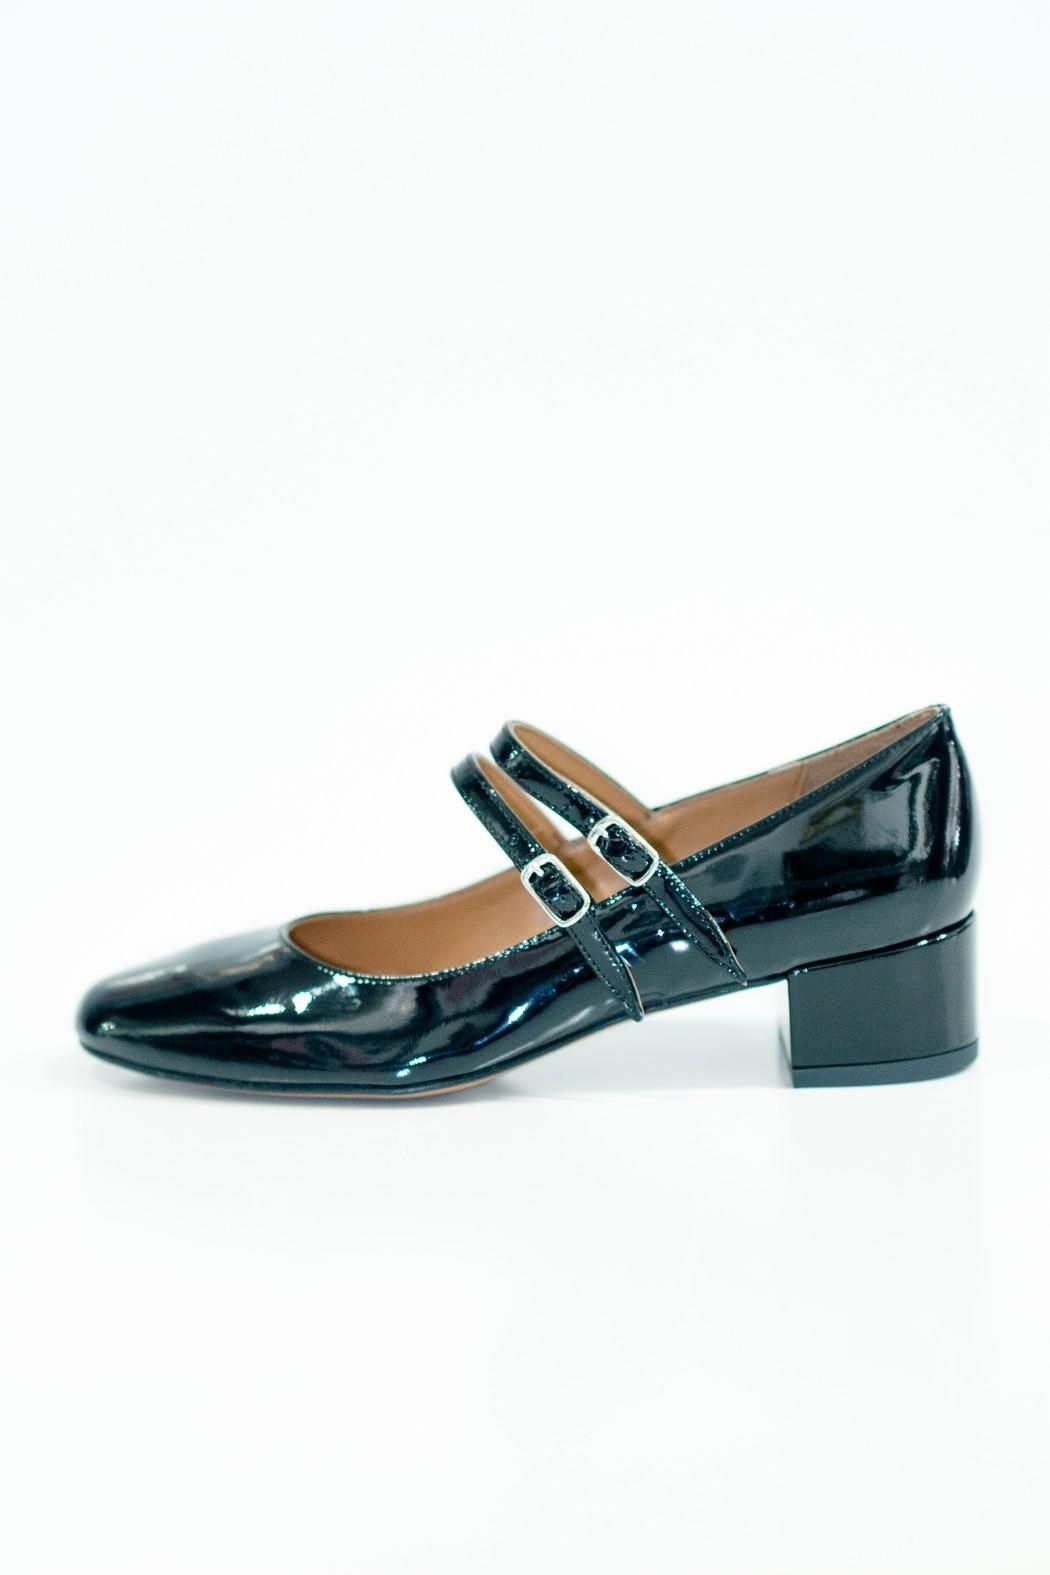 7f9ca65b964 Round toe with low block heel makes these the perfect day to night shoe.  Heel height 4.5cm Patent Leather Ballerina by Lady Doc.